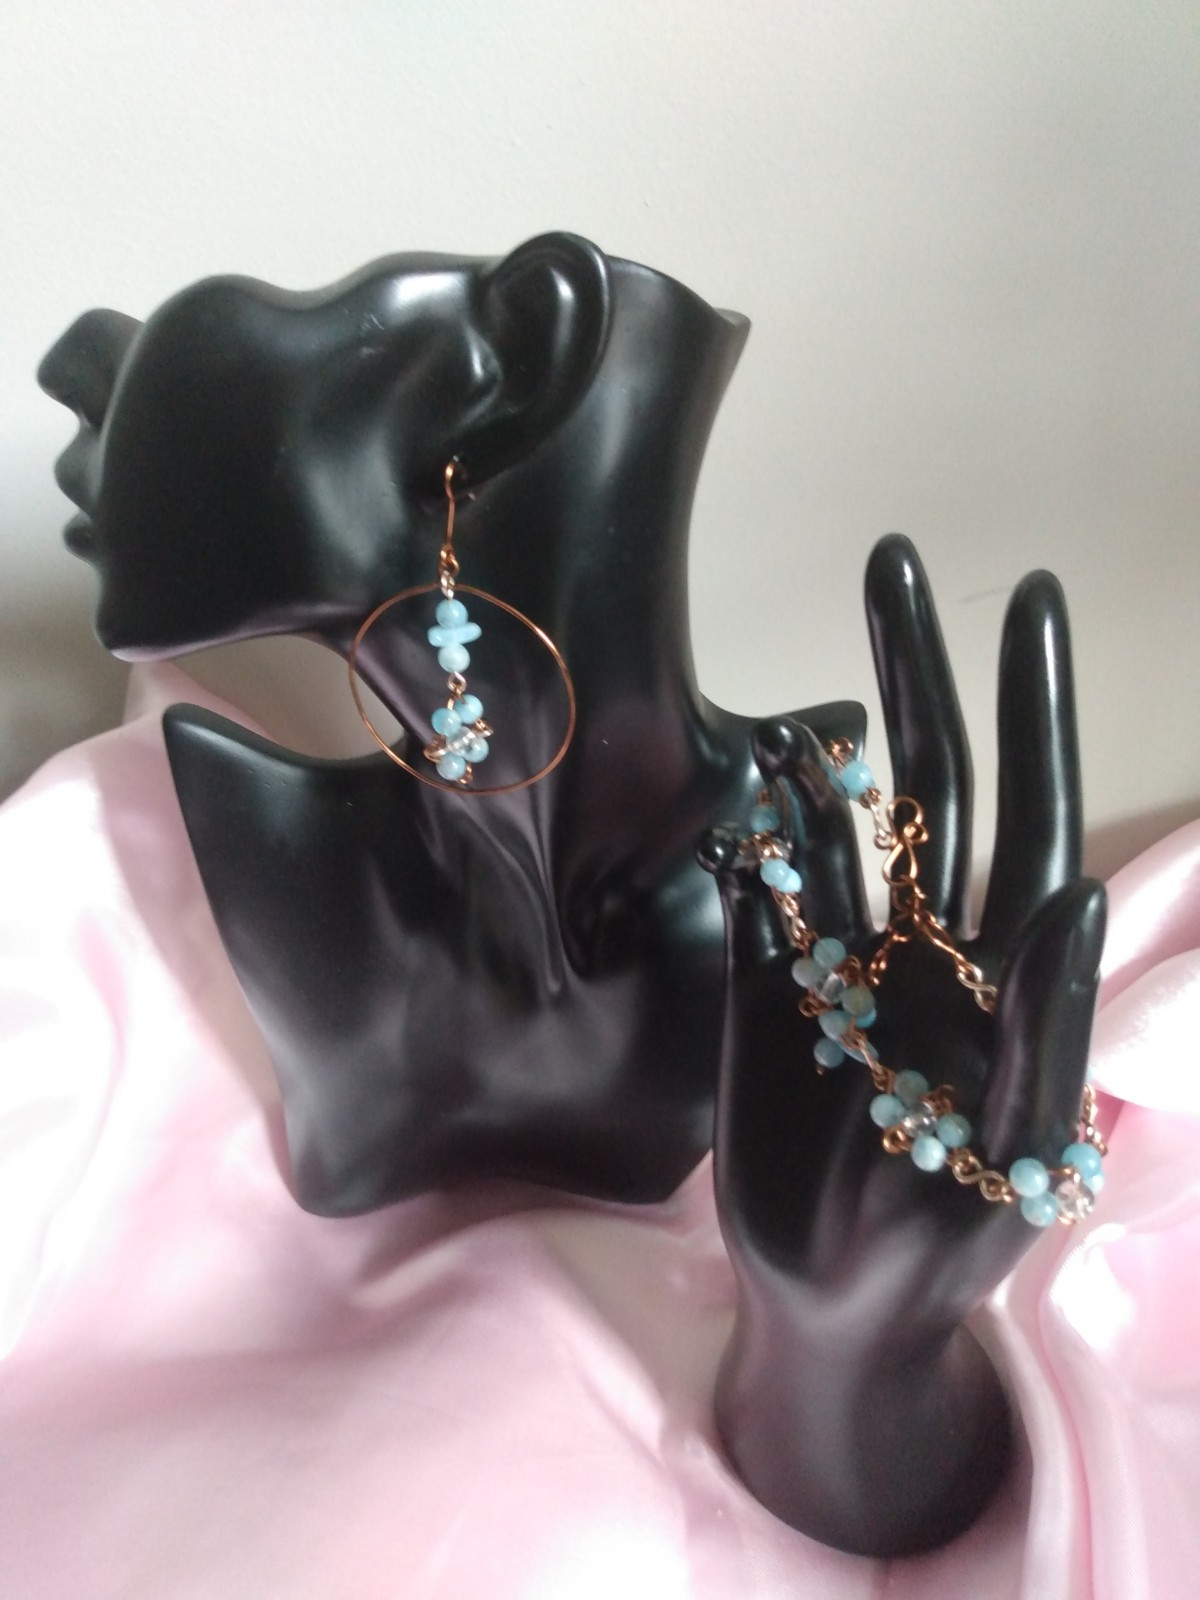 Aquamarine Crystal Hoop Earring & Bracelet Set